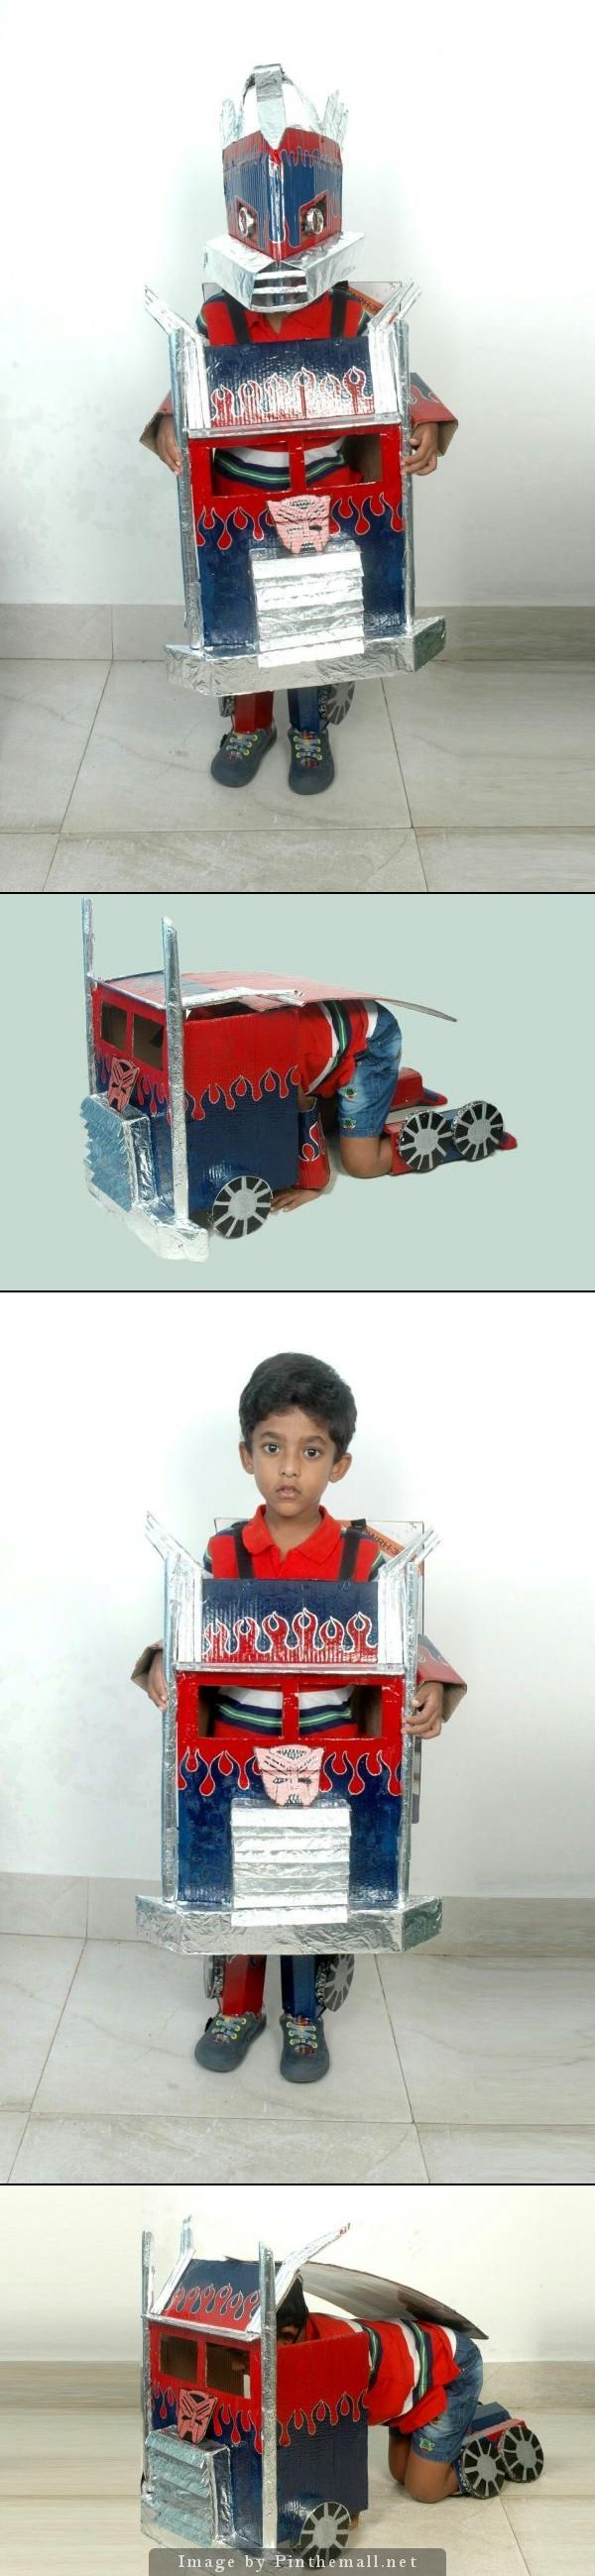 My son, Sai Krishna's Fancy dress competition dress. He won first prize for this costume . He is v.crazy with the Transformer movie, so I designed this costume like an Optimus. - created via http://pinthemall.net